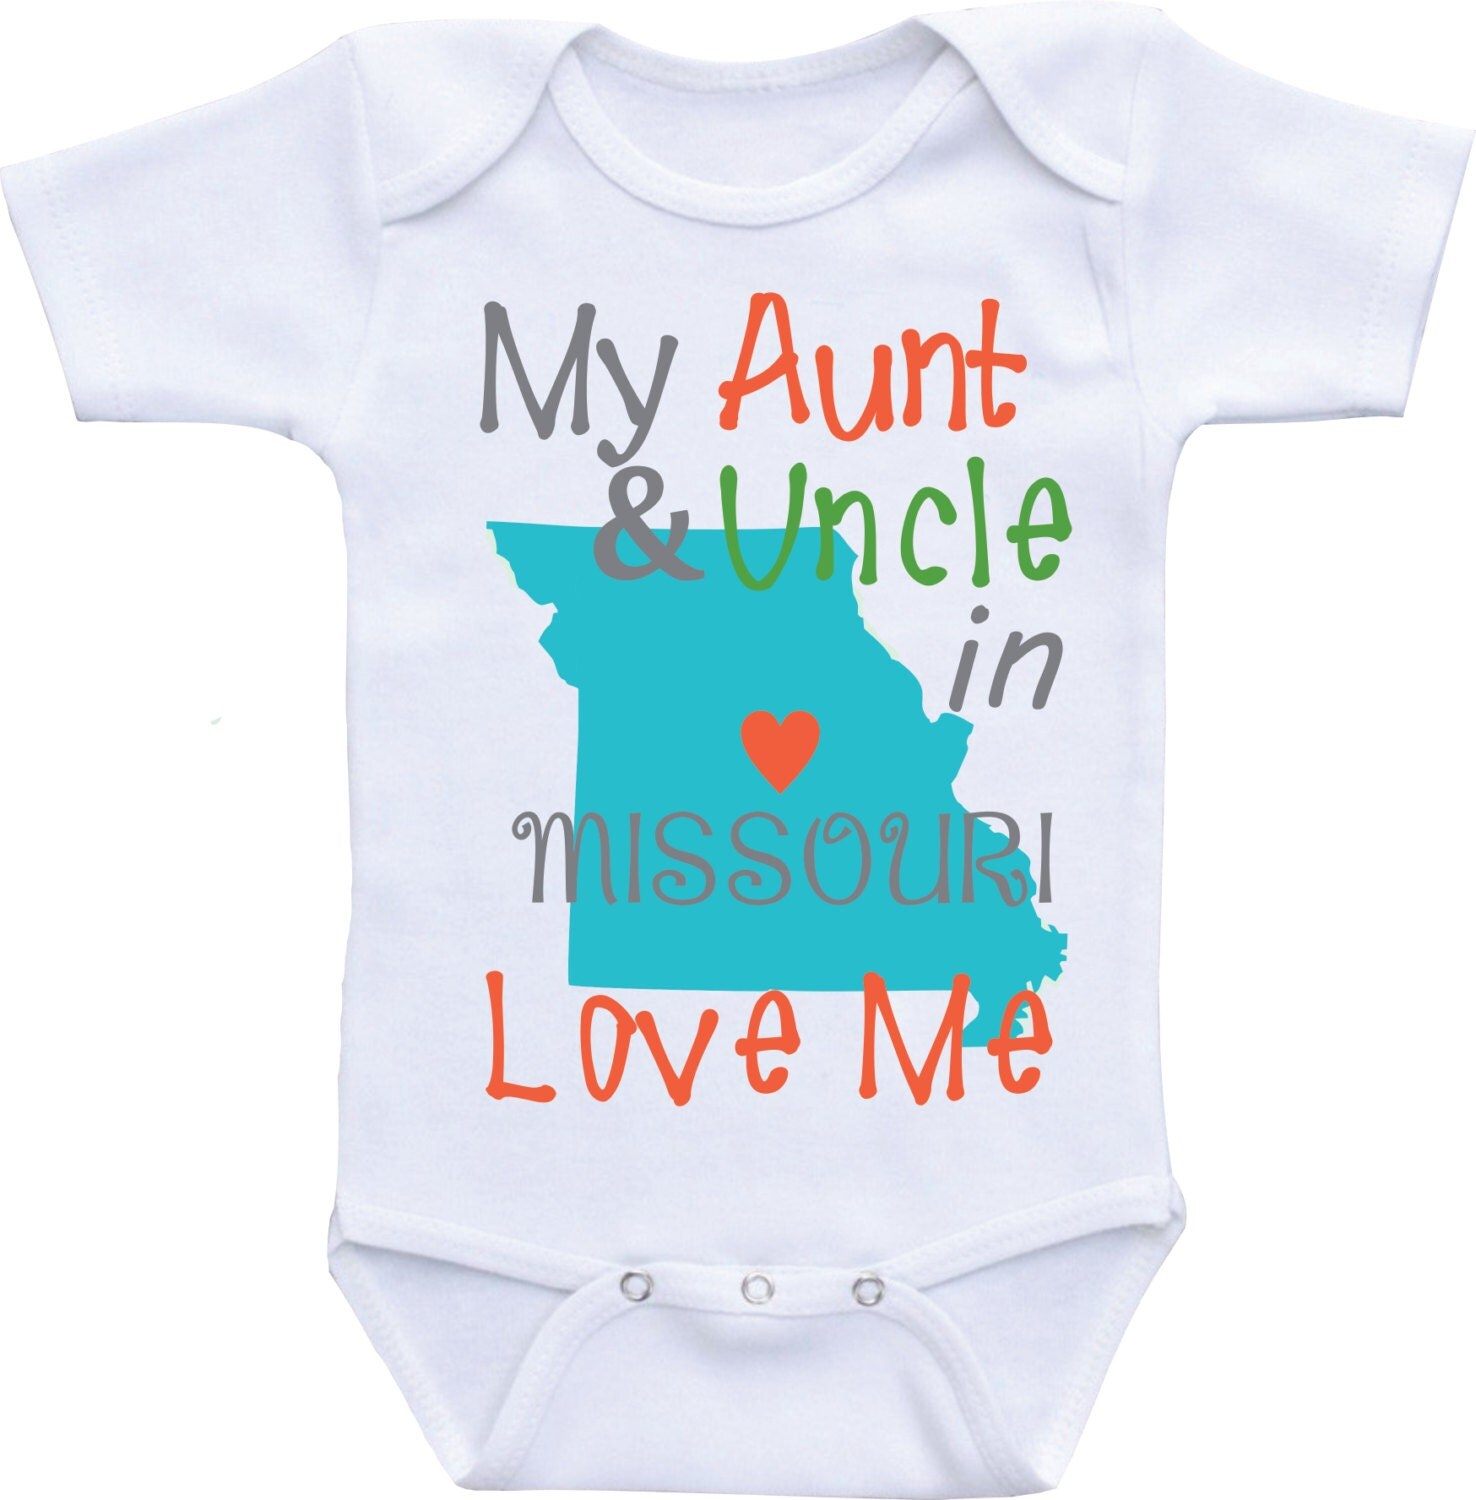 My Aunt and Uncle Love Me esies Auntie shirt from Different States